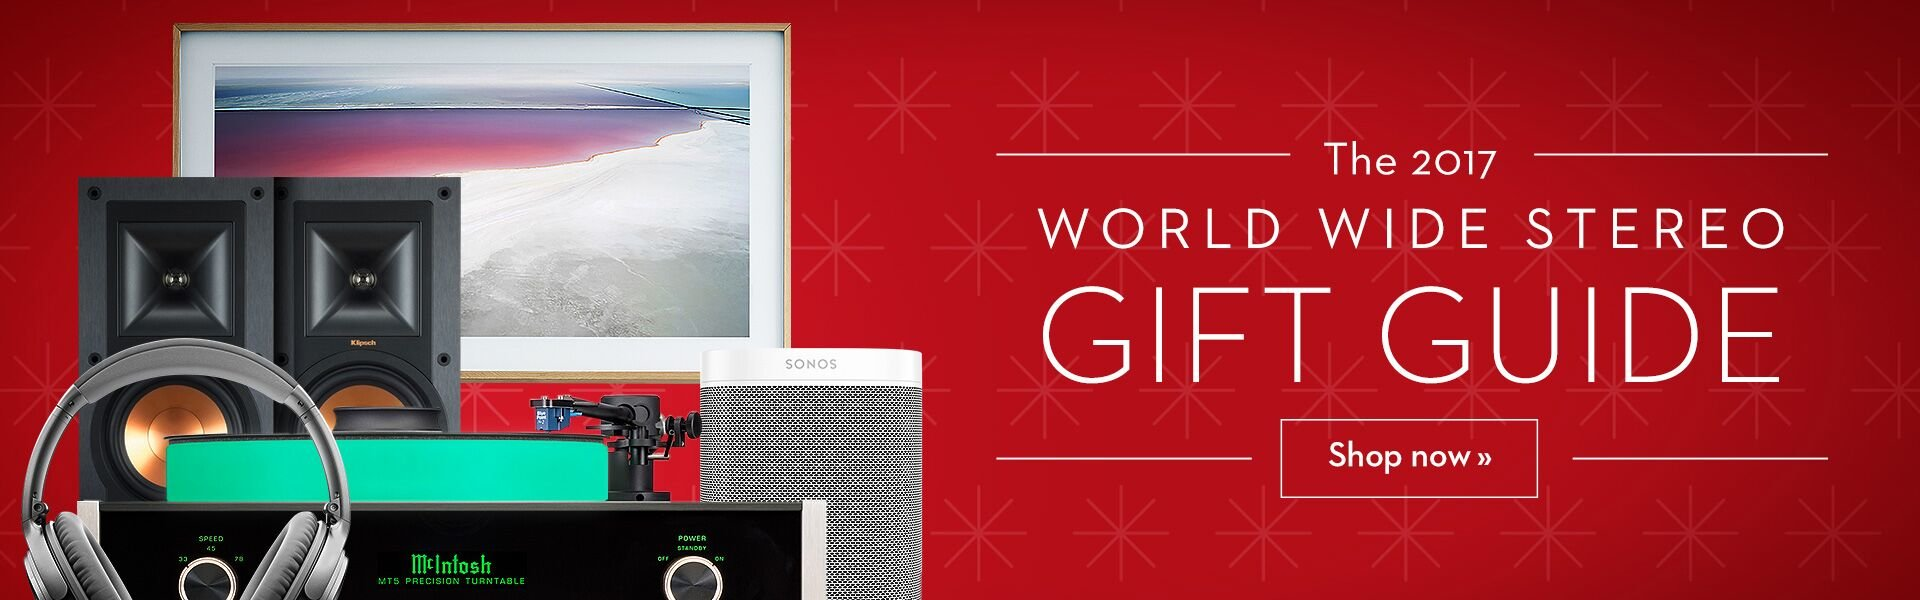 World Wide Stereo Holiday Gift Guide 2017